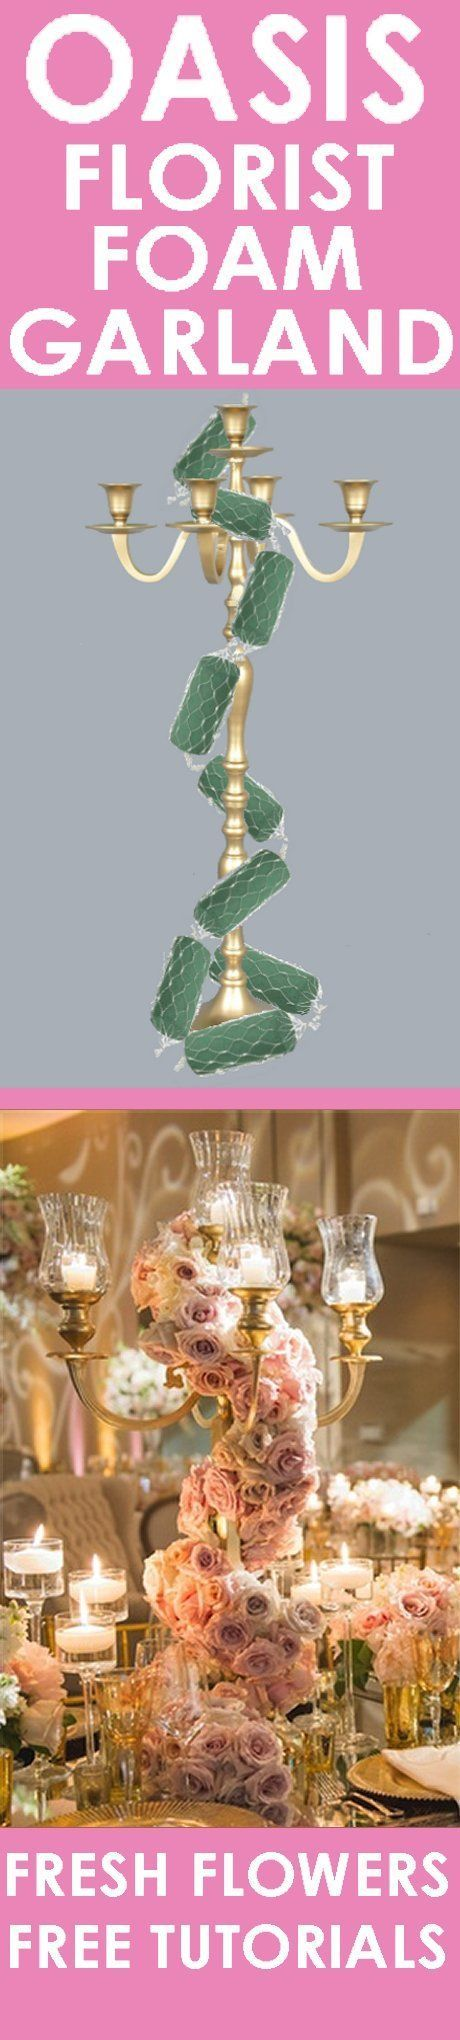 Learn how to make bridal bouquets, wedding corsages, grooms boutonnieres, reception centerpieces and amazing church decorations!  Buy wholesale fresh flowers and discount florist supplies.